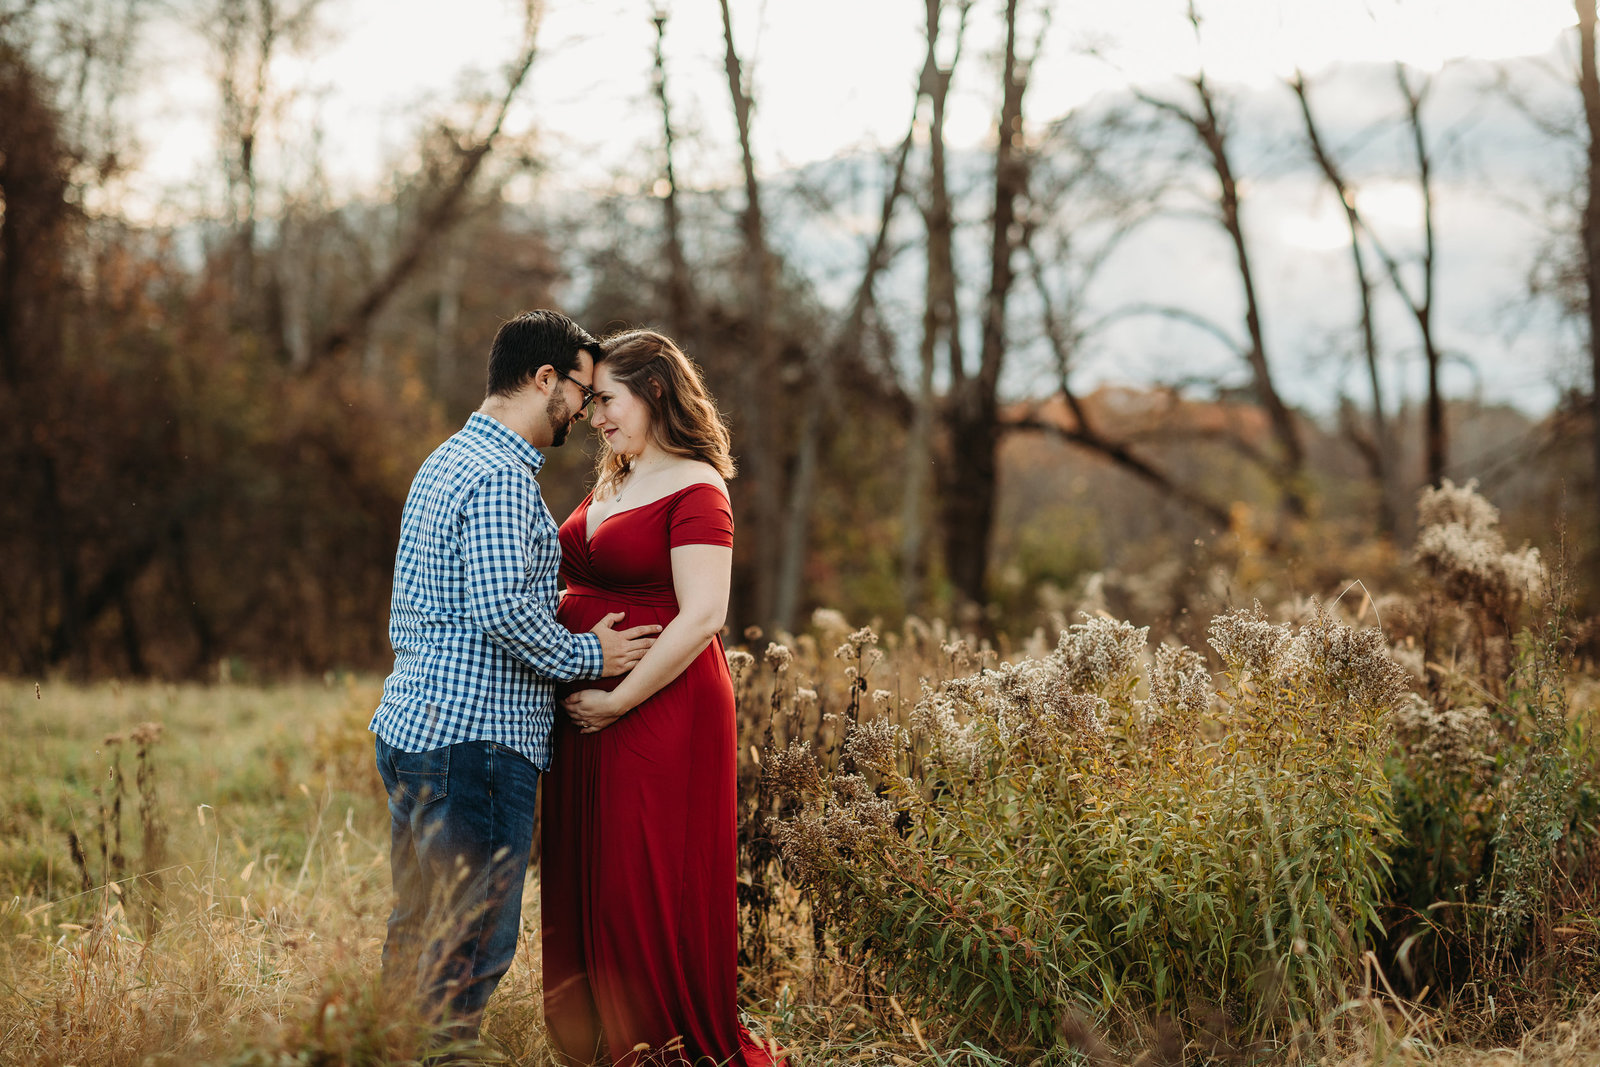 burgundy dress maternity session in boston